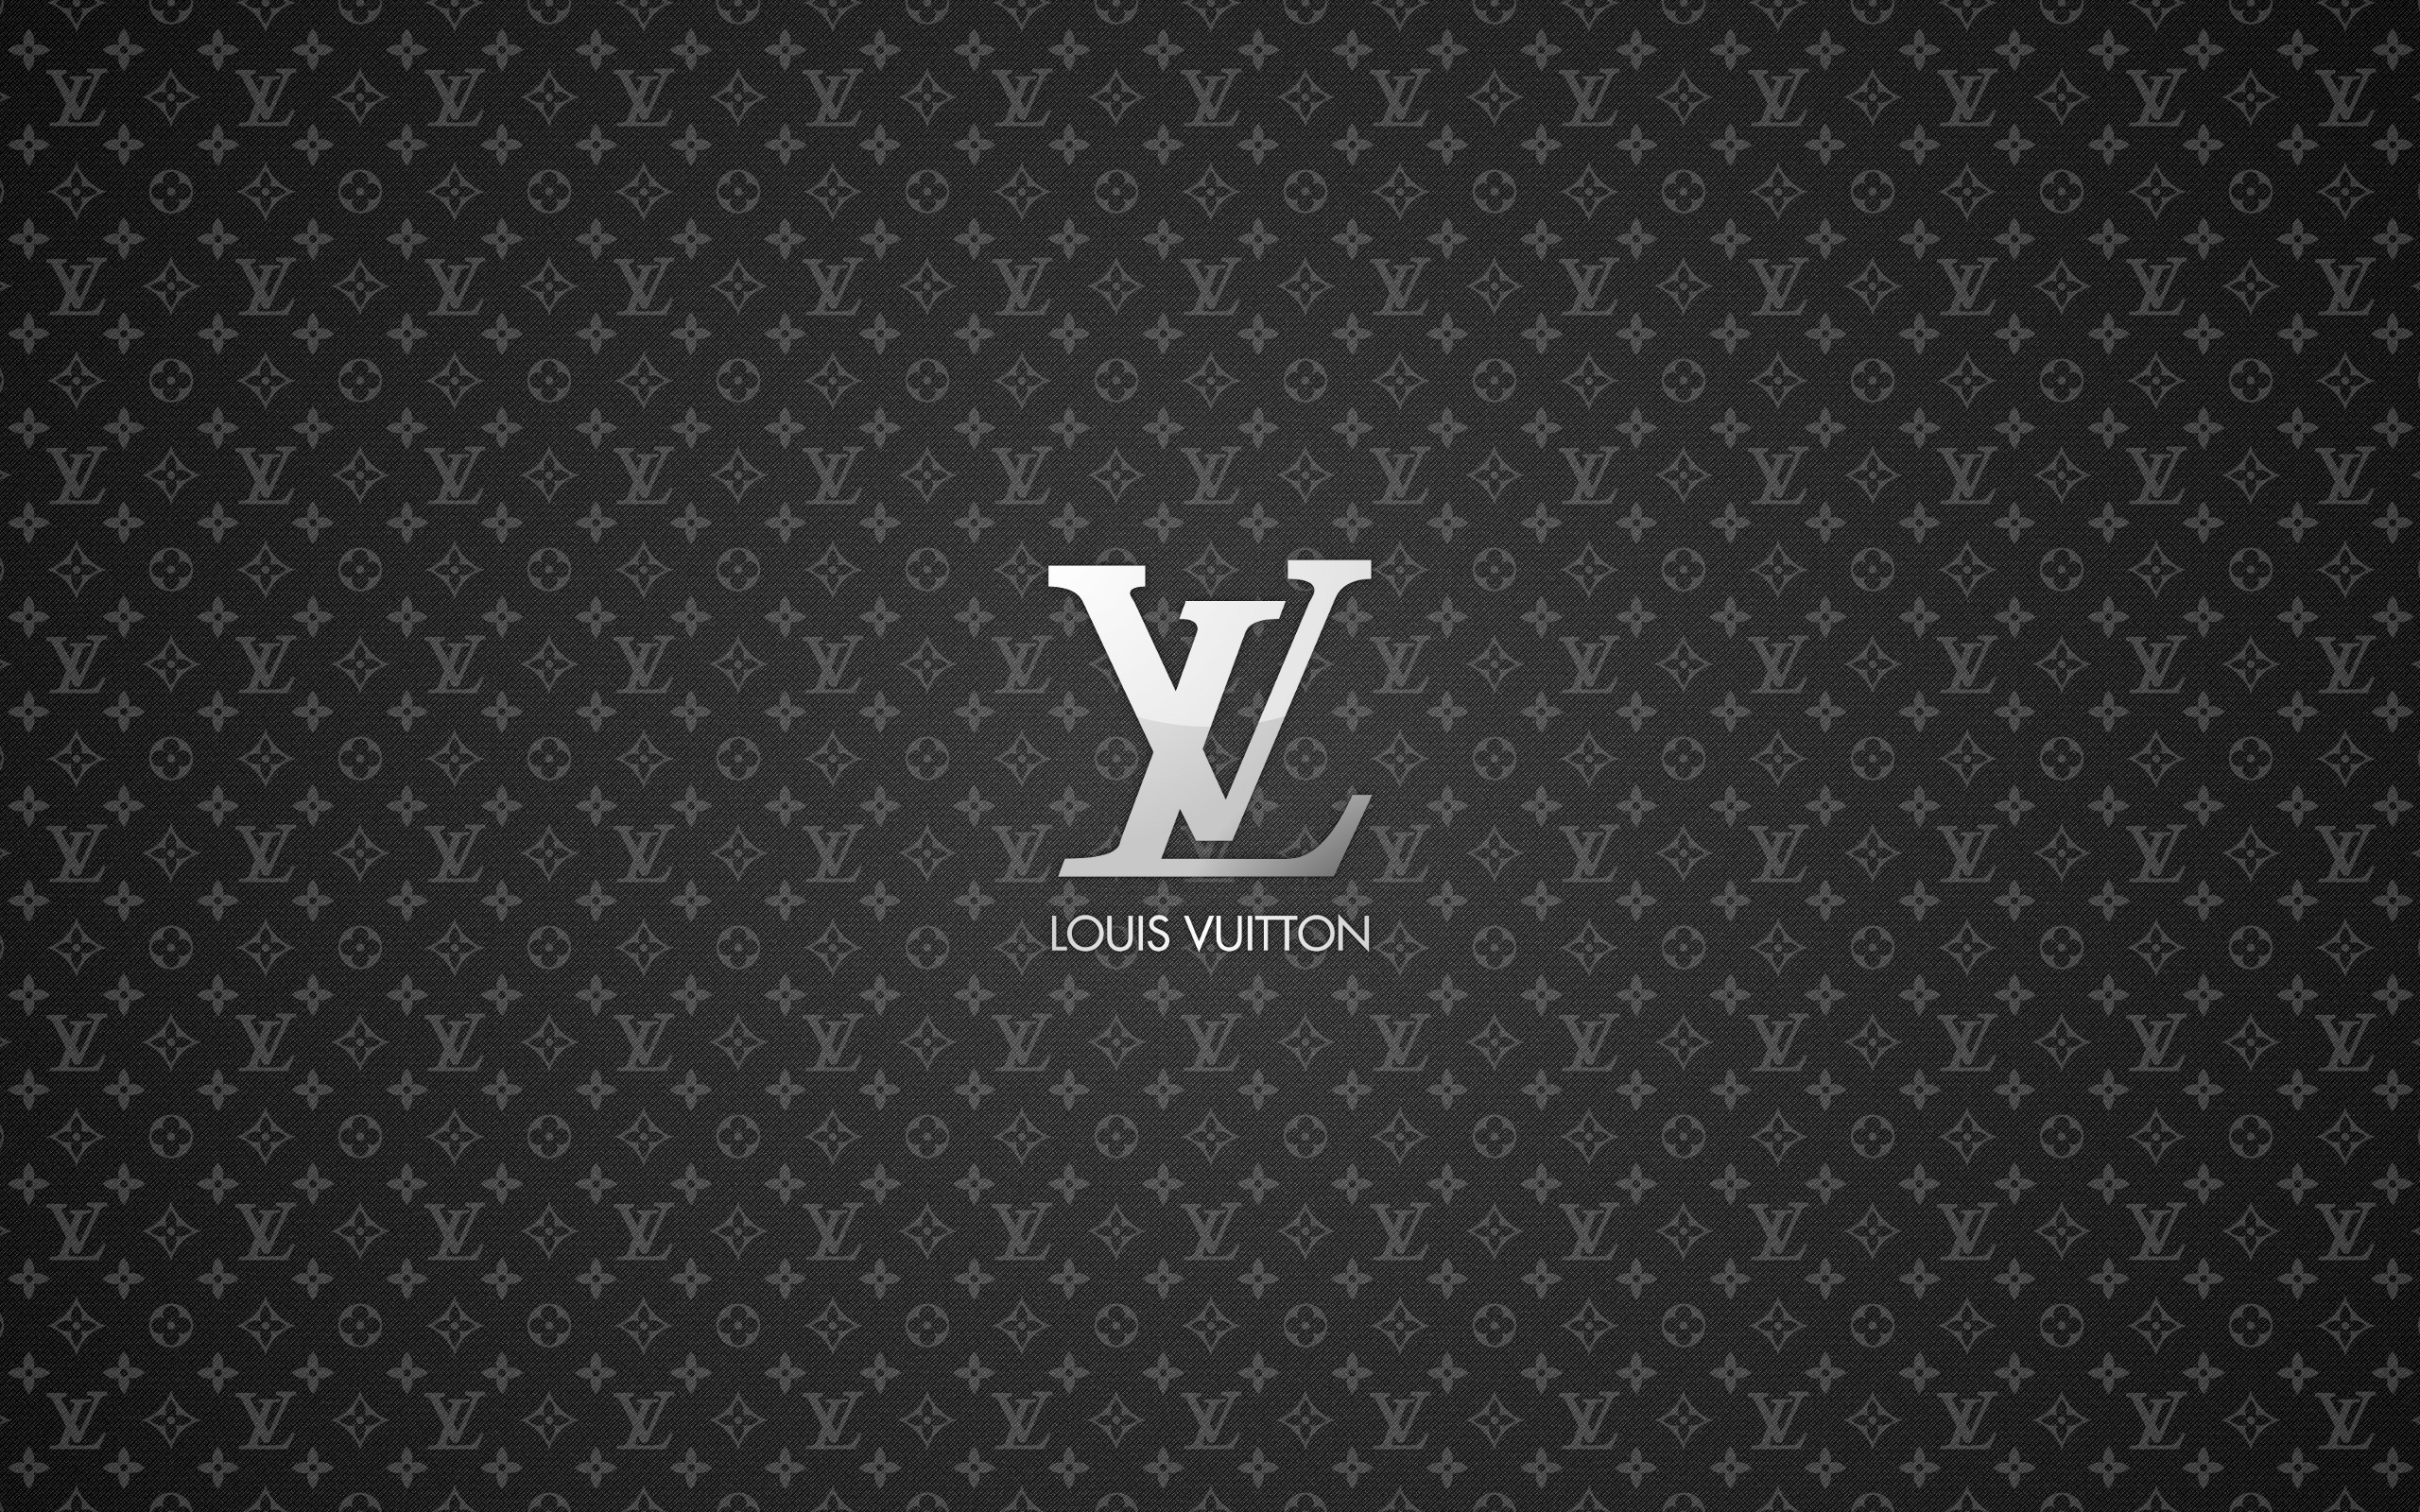 10 Louis Vuitton Fonds D'écran HD